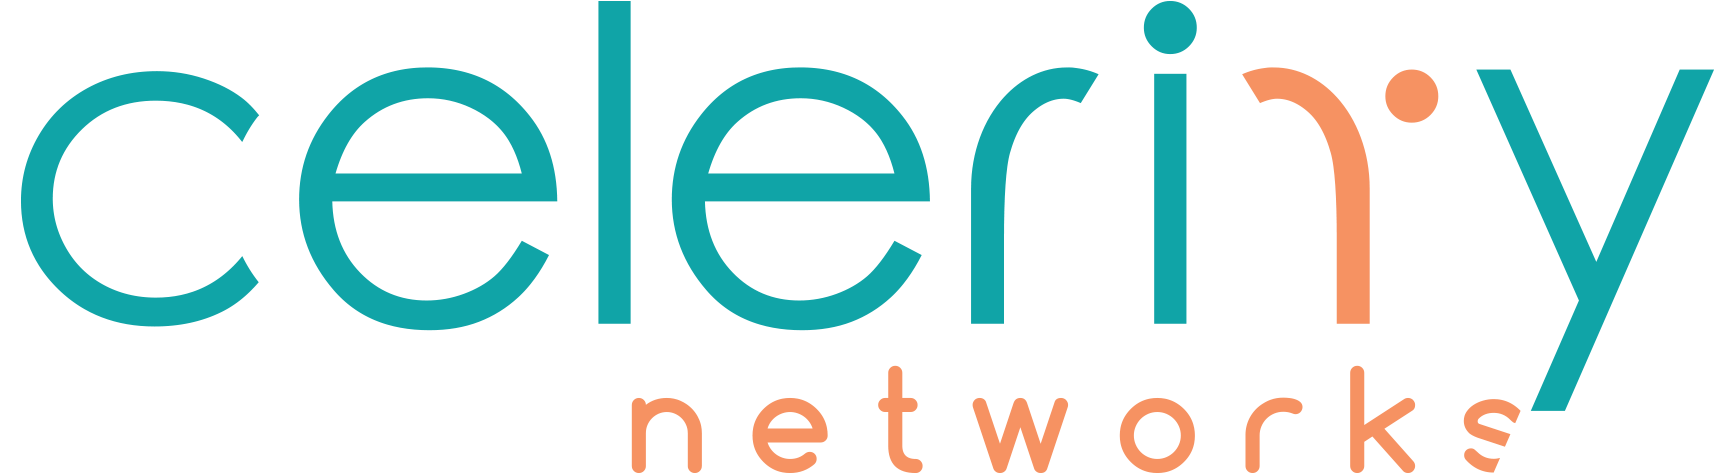 Celerity Networks